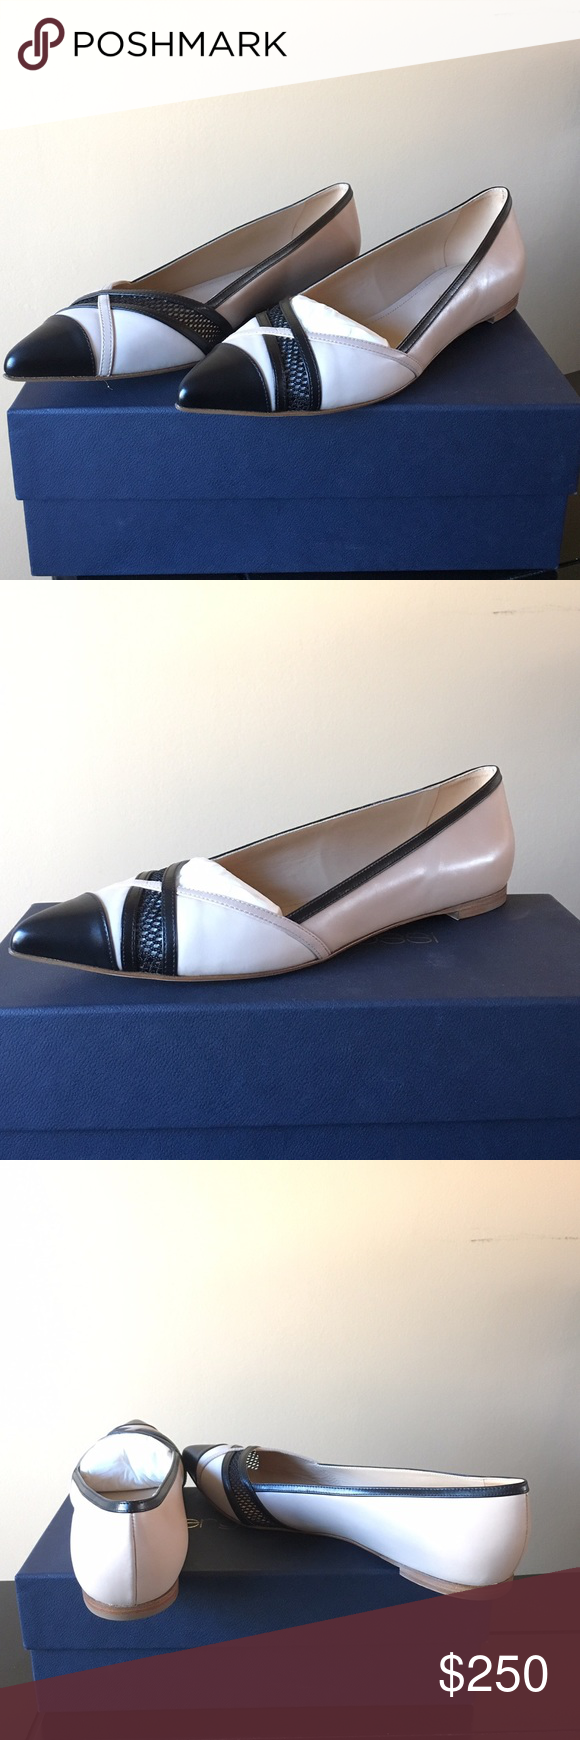 Sergio Rossi Flat Slightly worn Sergio Rossi Flat. The mesh flat is a point toe flat with a colored toe accent. Mesh detailing at front. Small stacked heel. Chalk color. Sergio Rossi Shoes Flats & Loafers